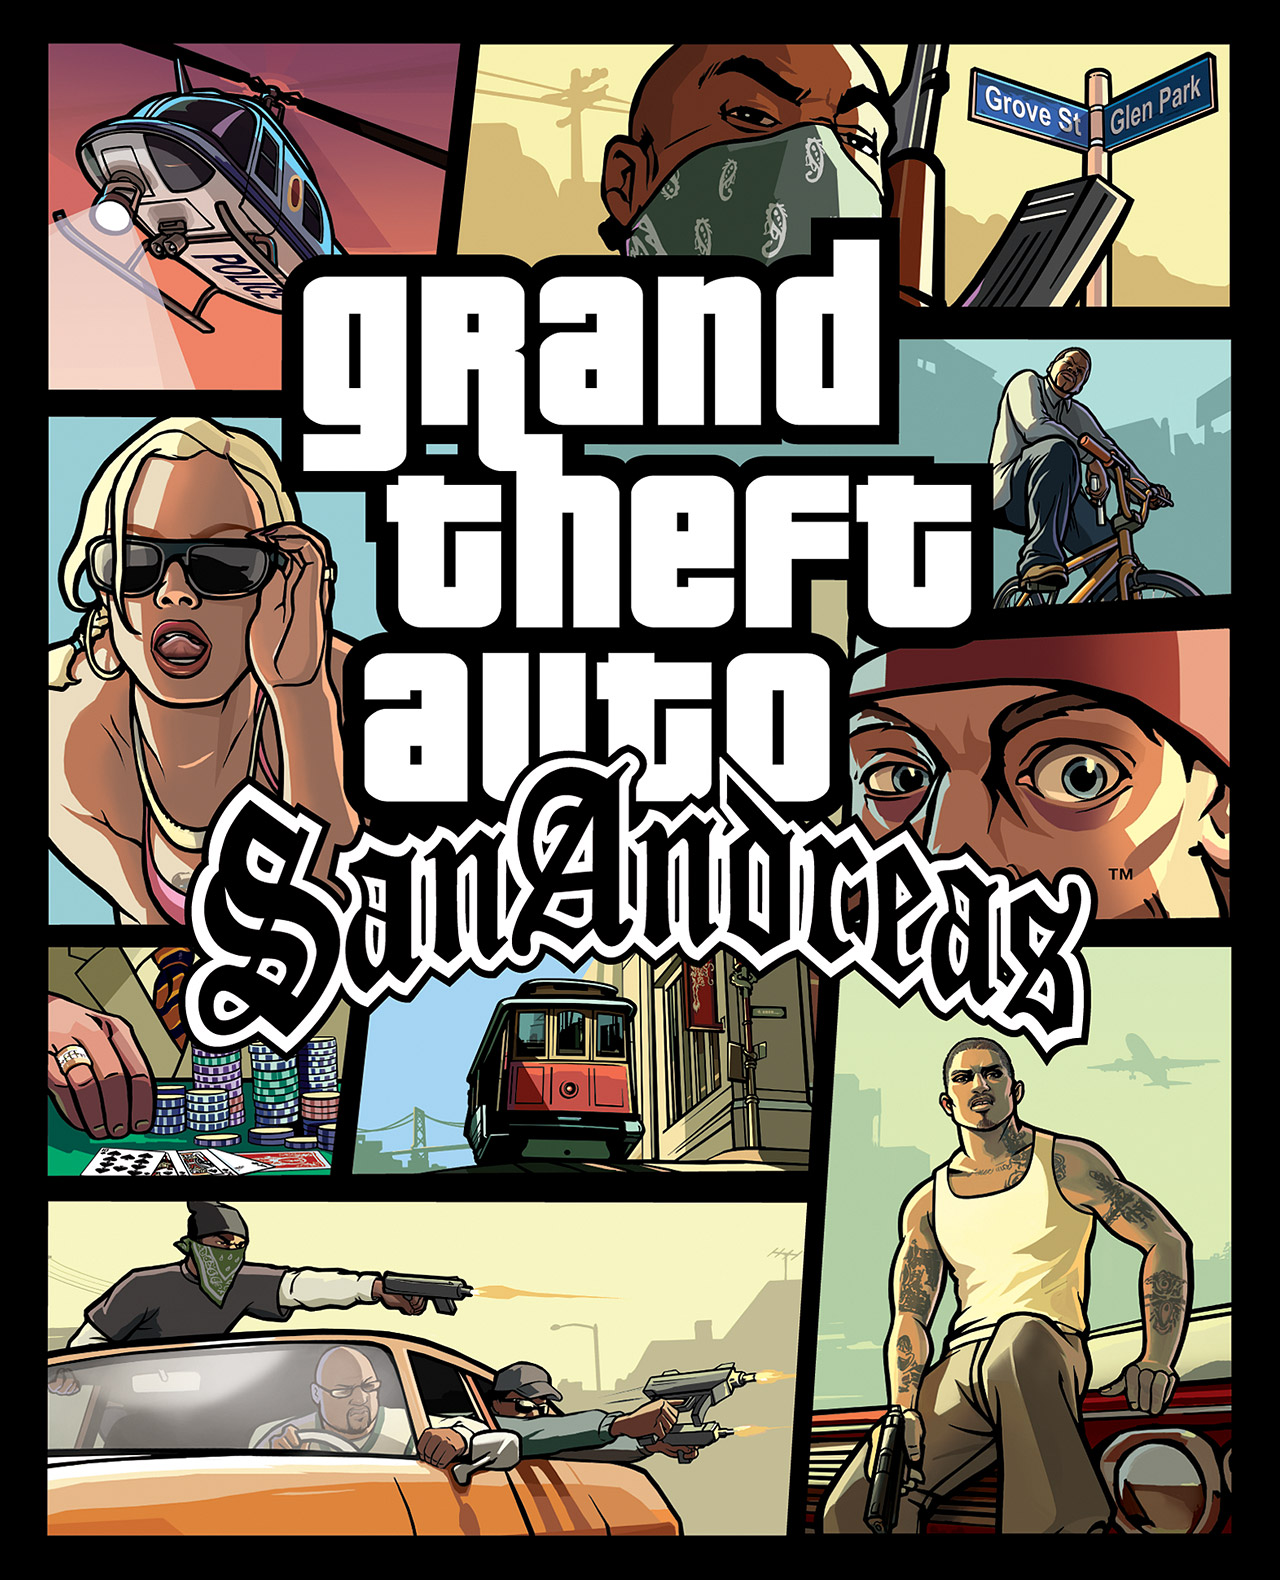 Grand theft auto san andreas 007 mod